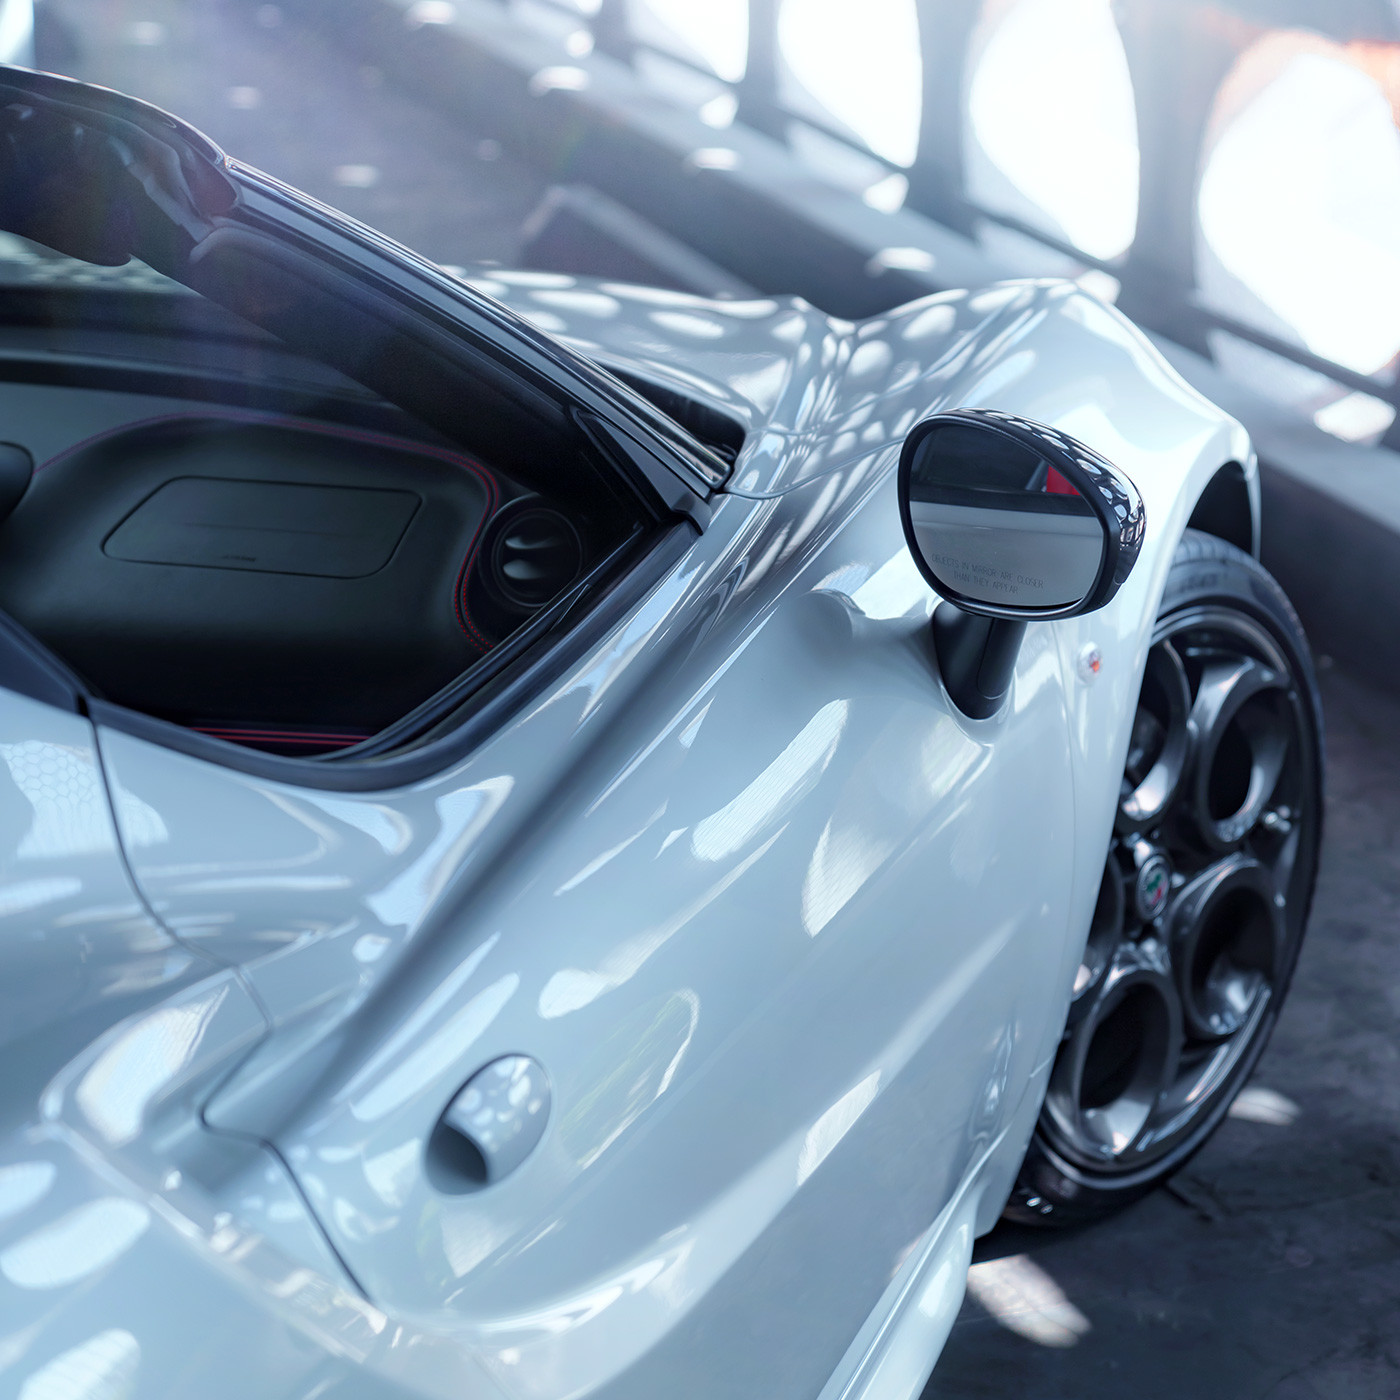 Alfa Romeo 4C spider side mirror and door shown with white exterior